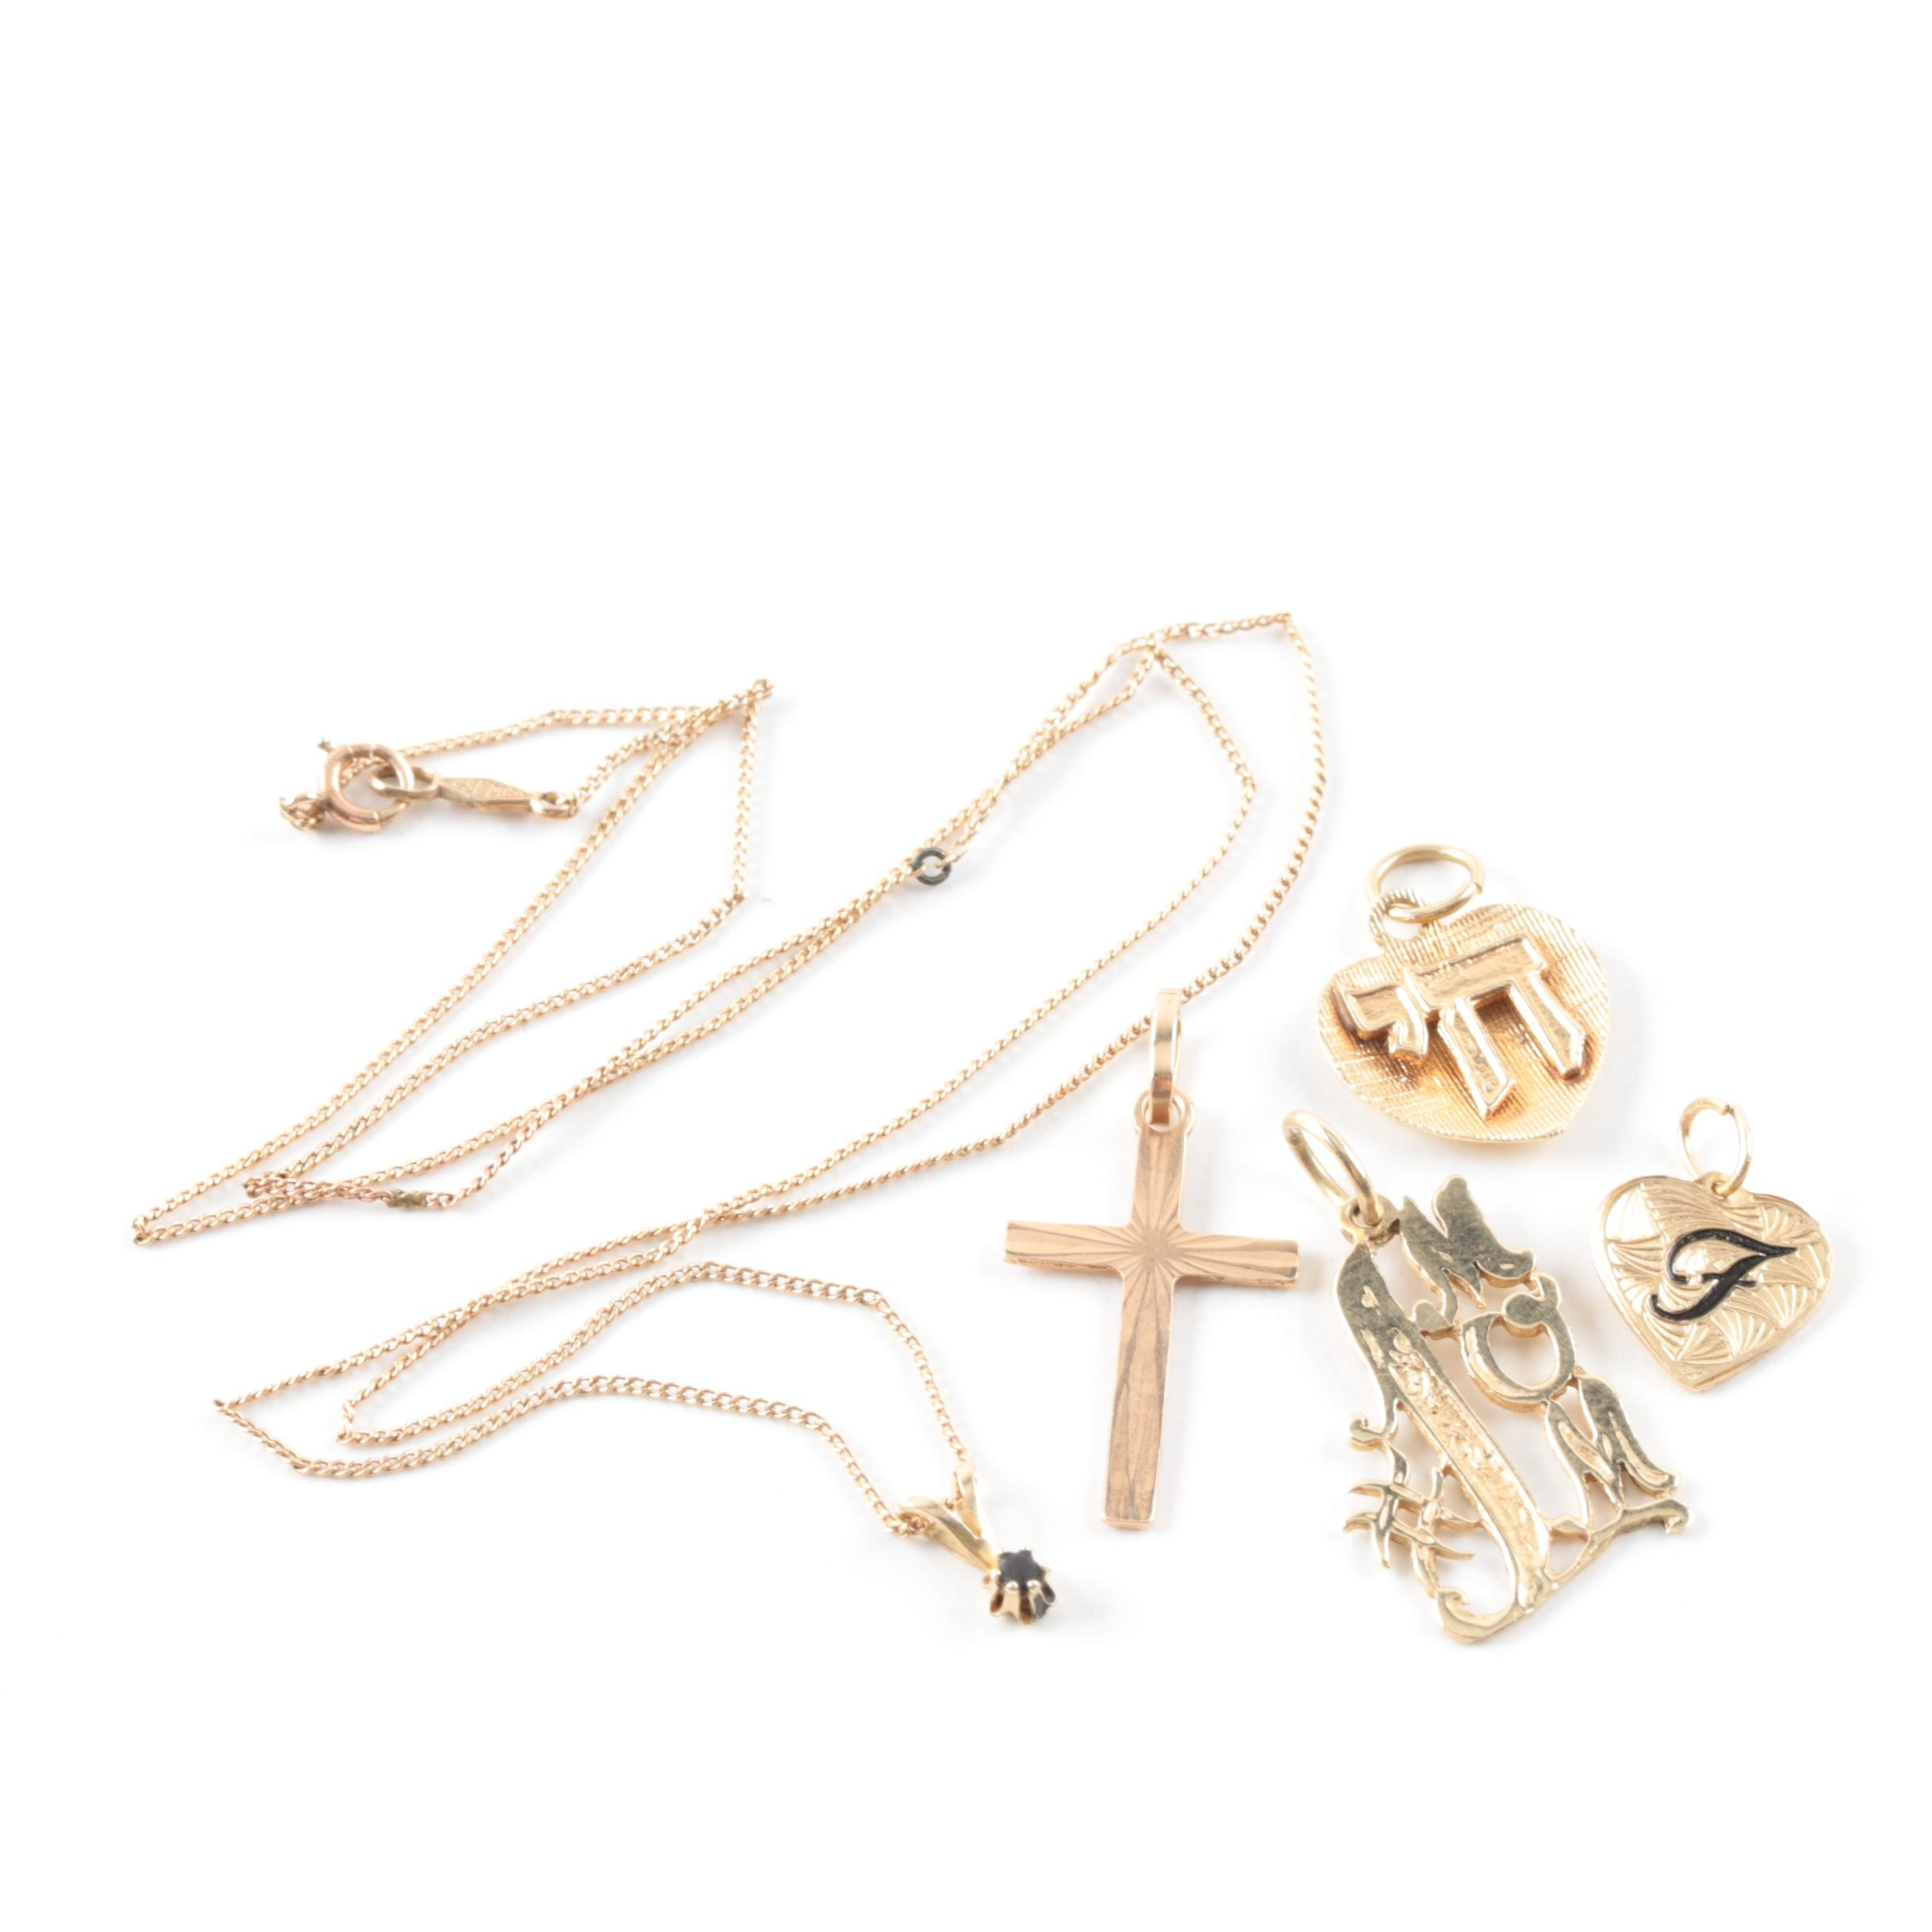 10K and 14K Yellow Gold Pendant Necklace and Charms Including Resin